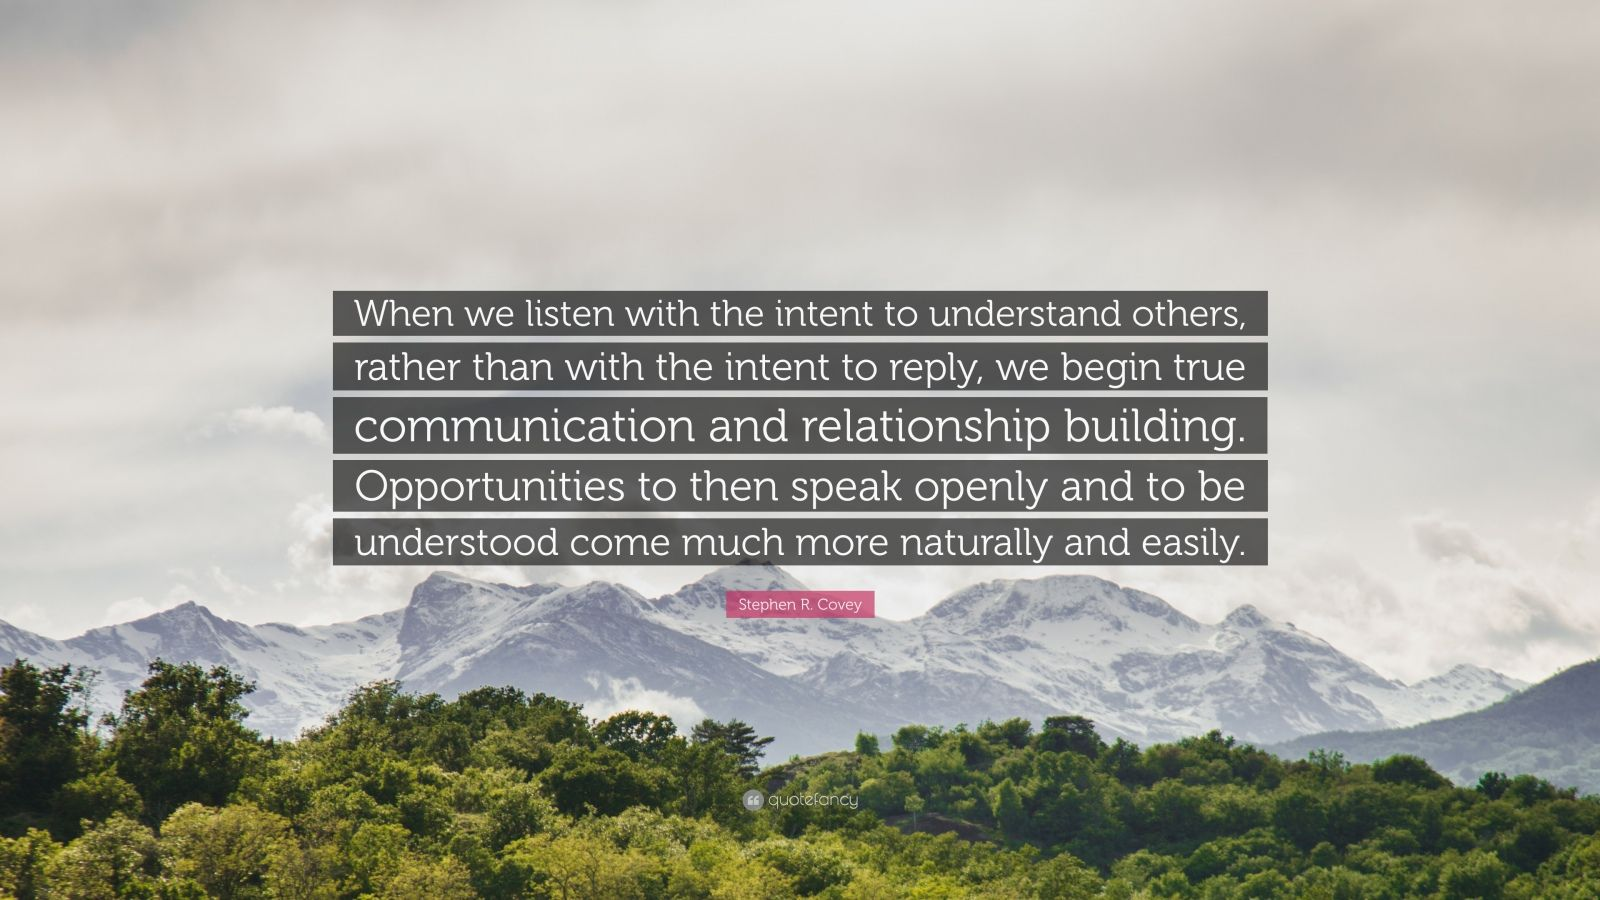 """Stephen R. Covey Quote: """"When we listen with the intent to understand others, rather than with the intent to reply, we begin true communication and relationship building. Opportunities to then speak openly and to be understood come much more naturally and easily."""""""